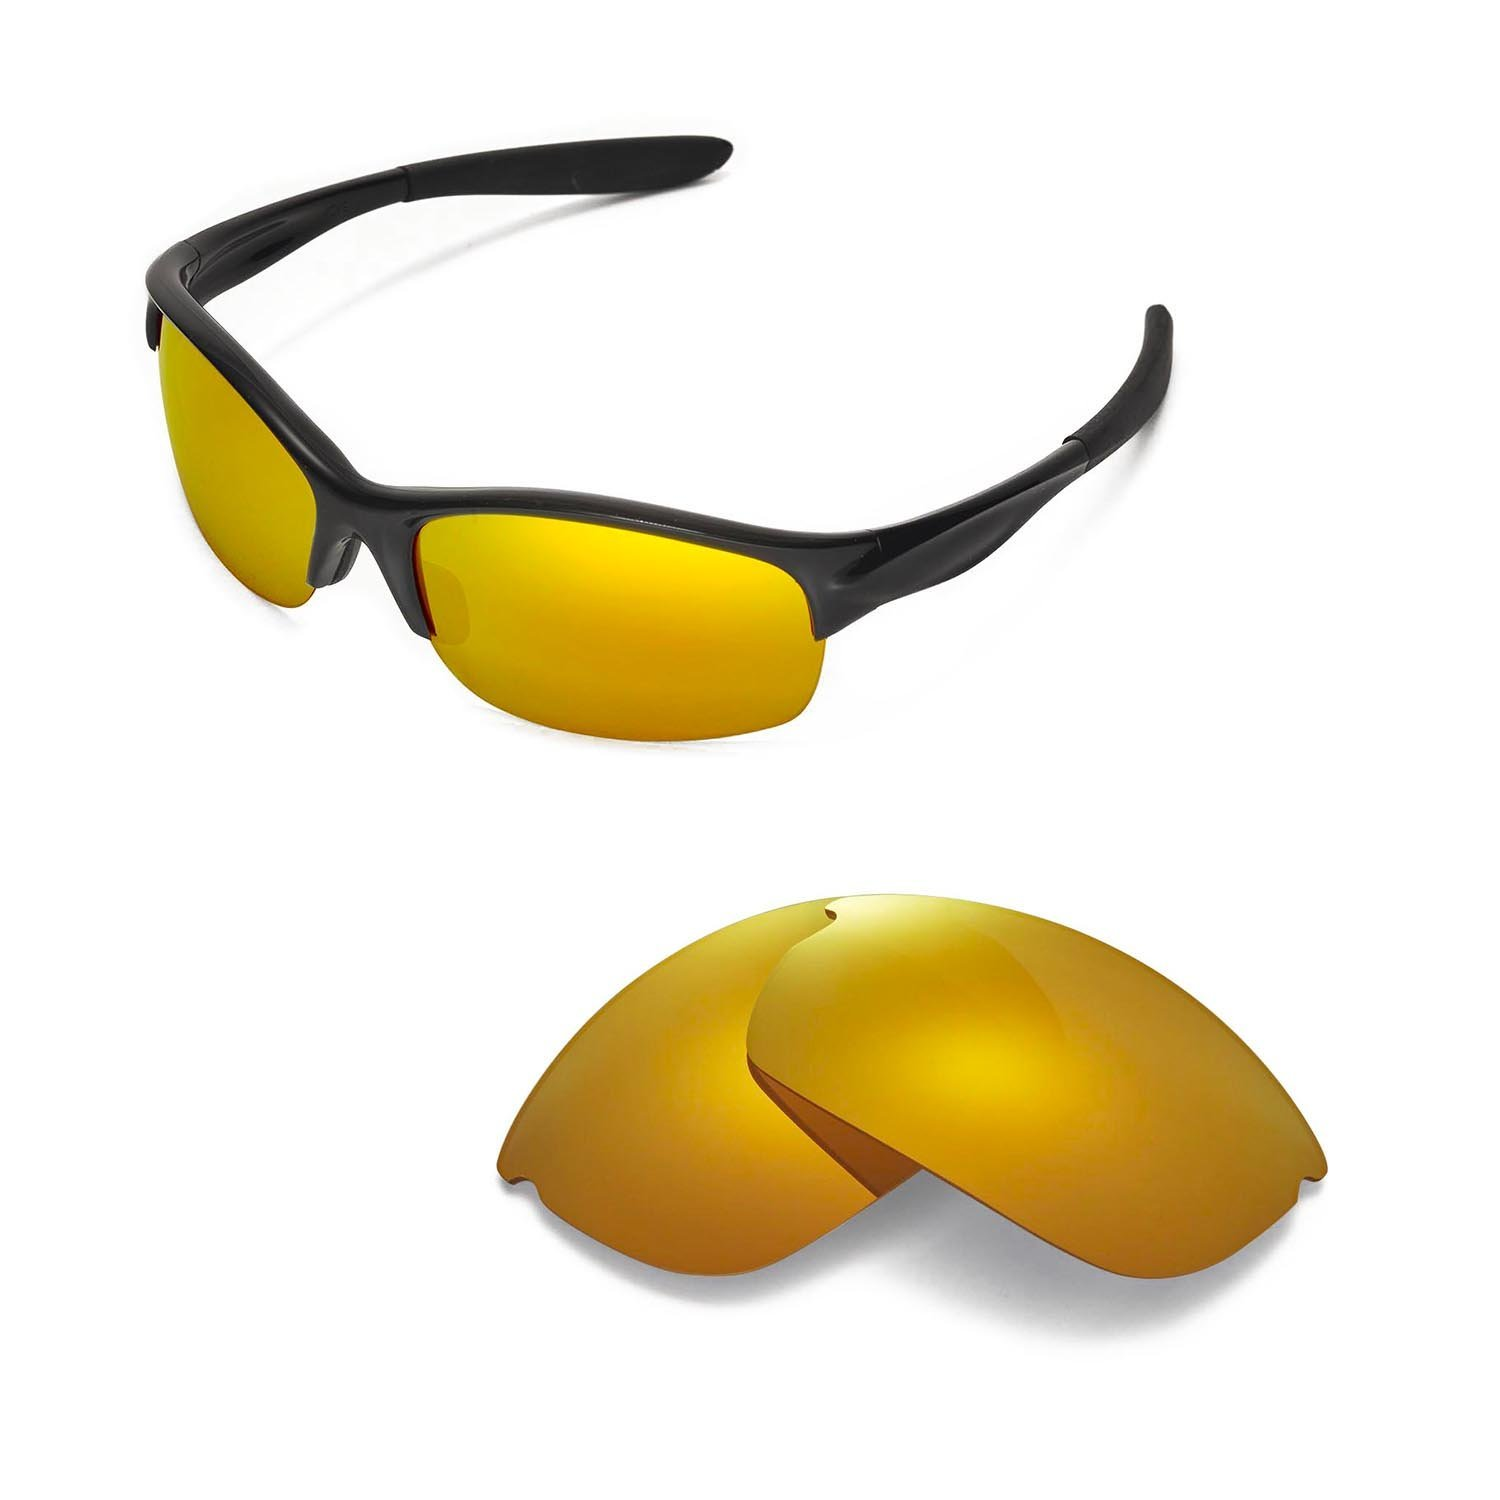 e97ab1b8504 Amazon.com  Walleva Replacement Lenses for Oakley Commit SQ Sunglasses -  Multiple Options Available (24K Gold Mirror Coated - Polarized)  Sports    Outdoors